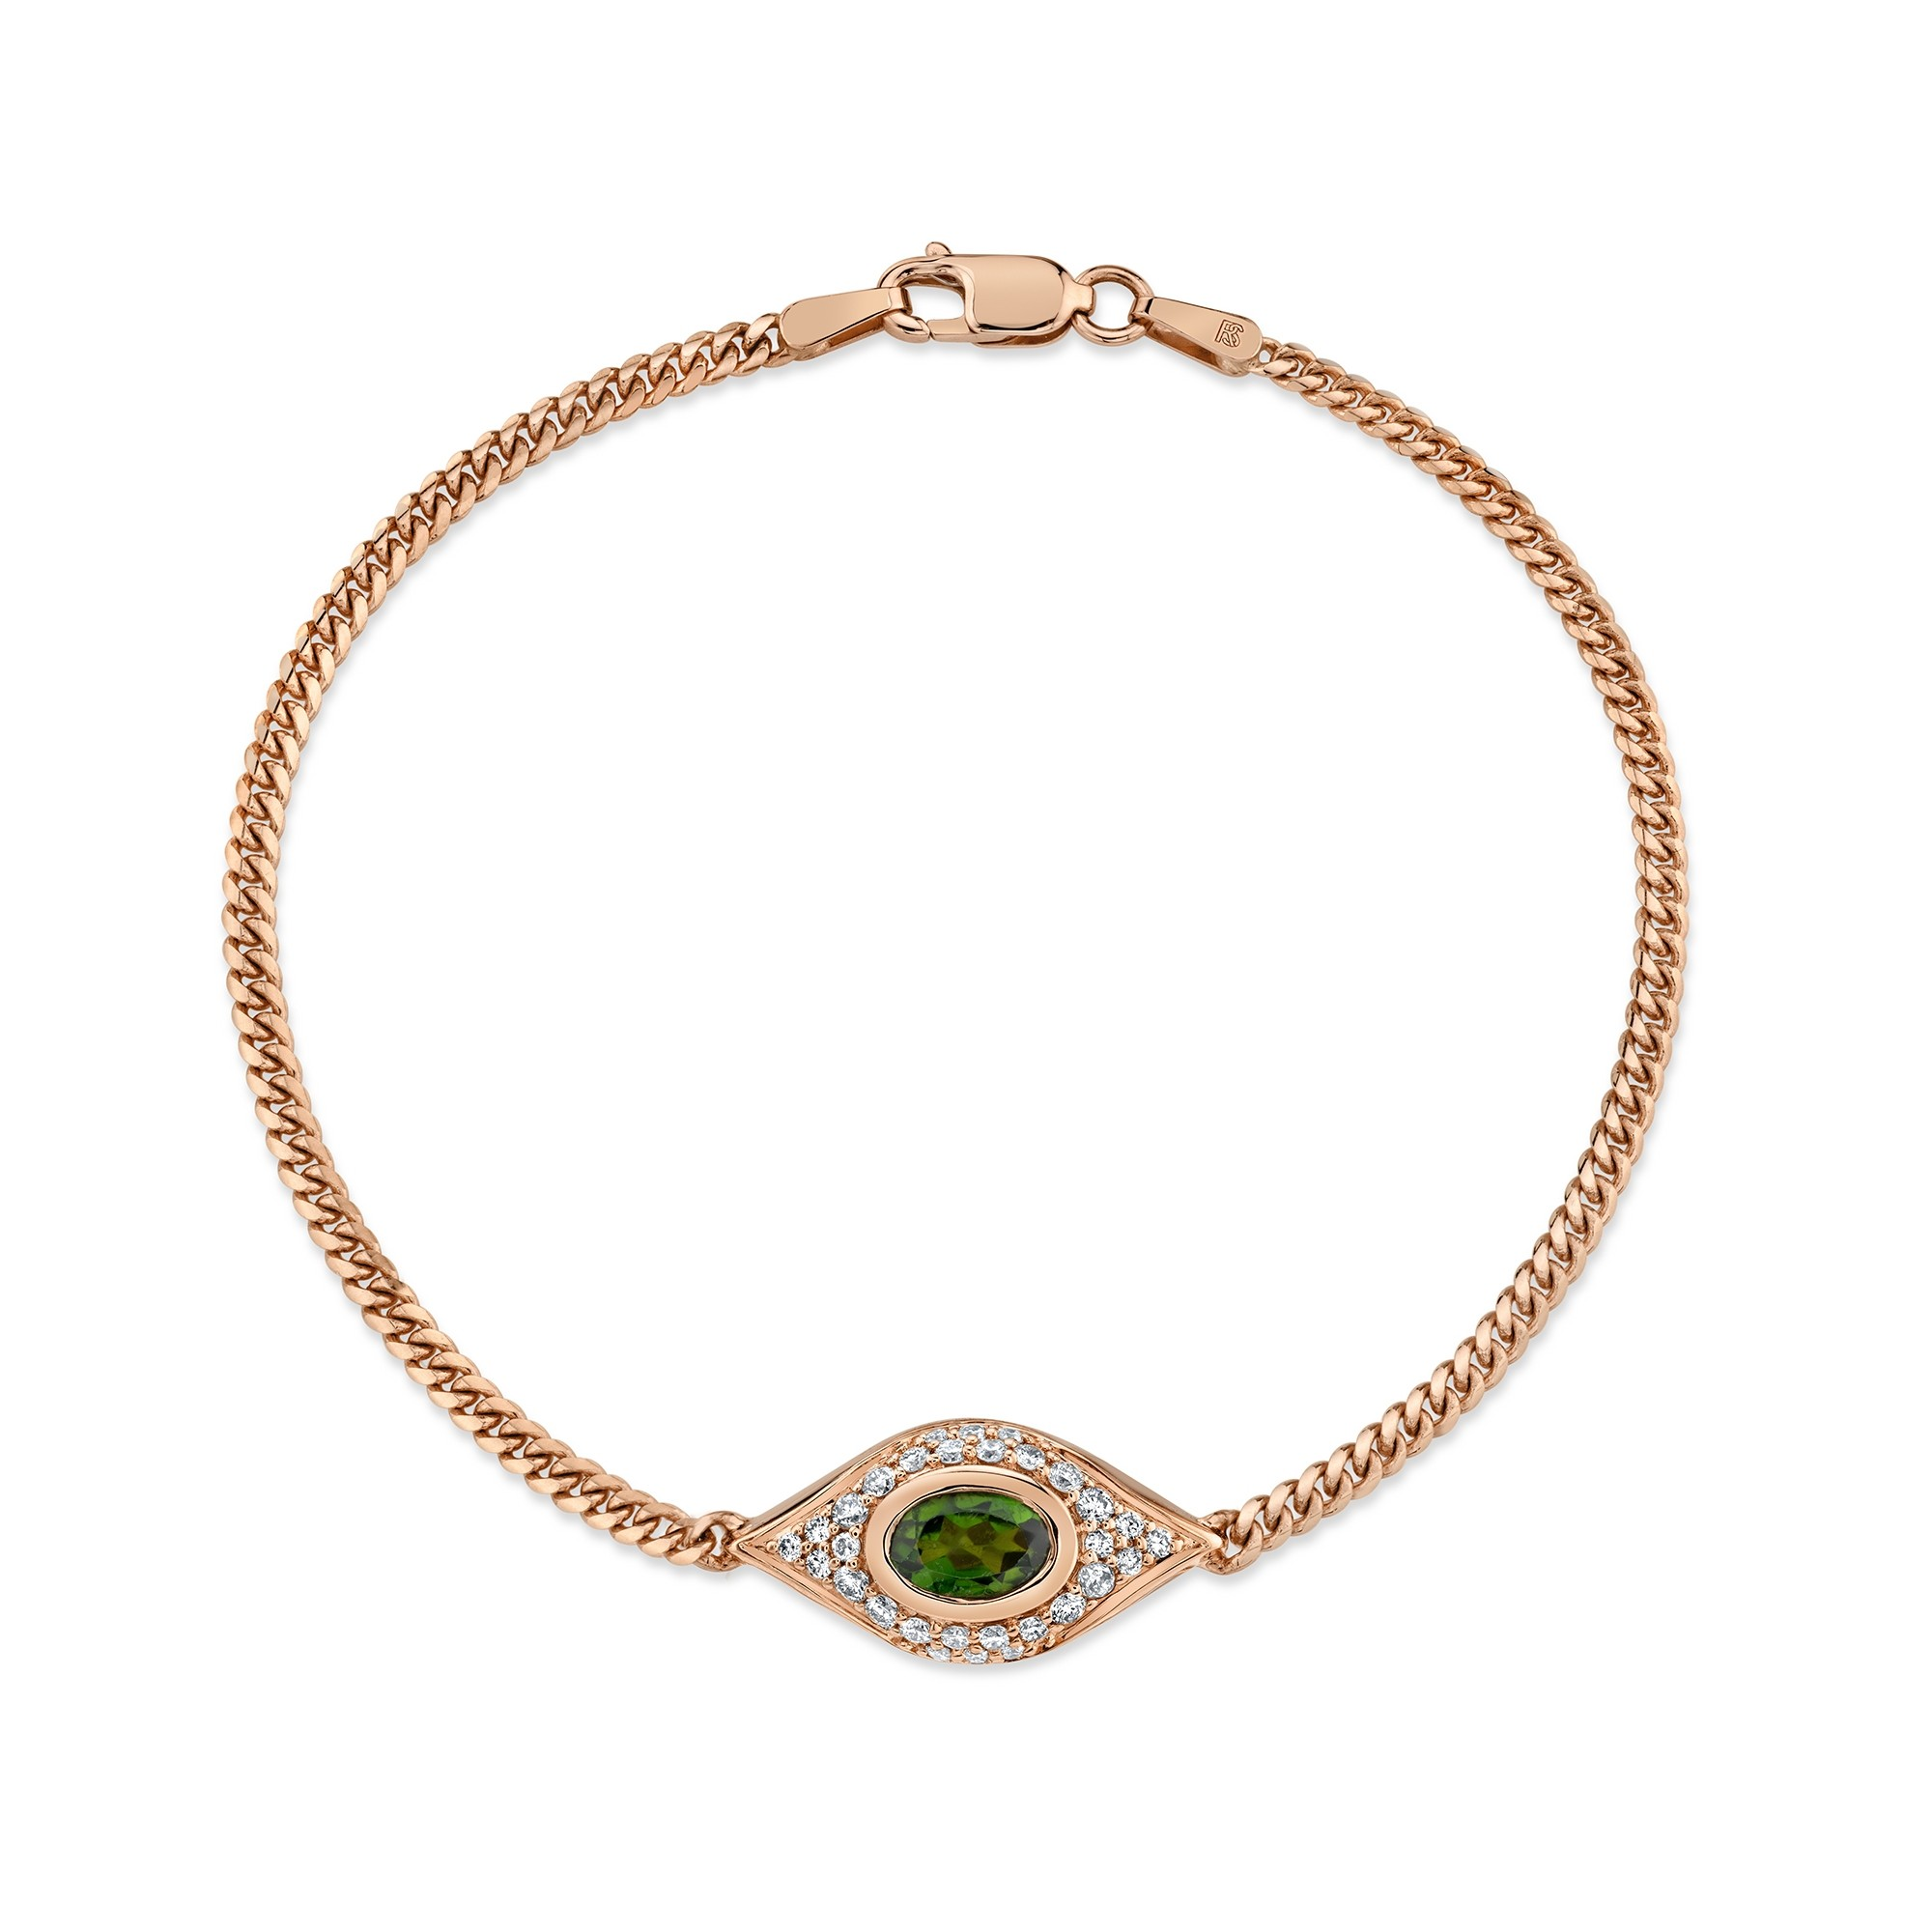 14k Rose Gold Diamond Oval Green Tourmaline Evil Eye Bracelet